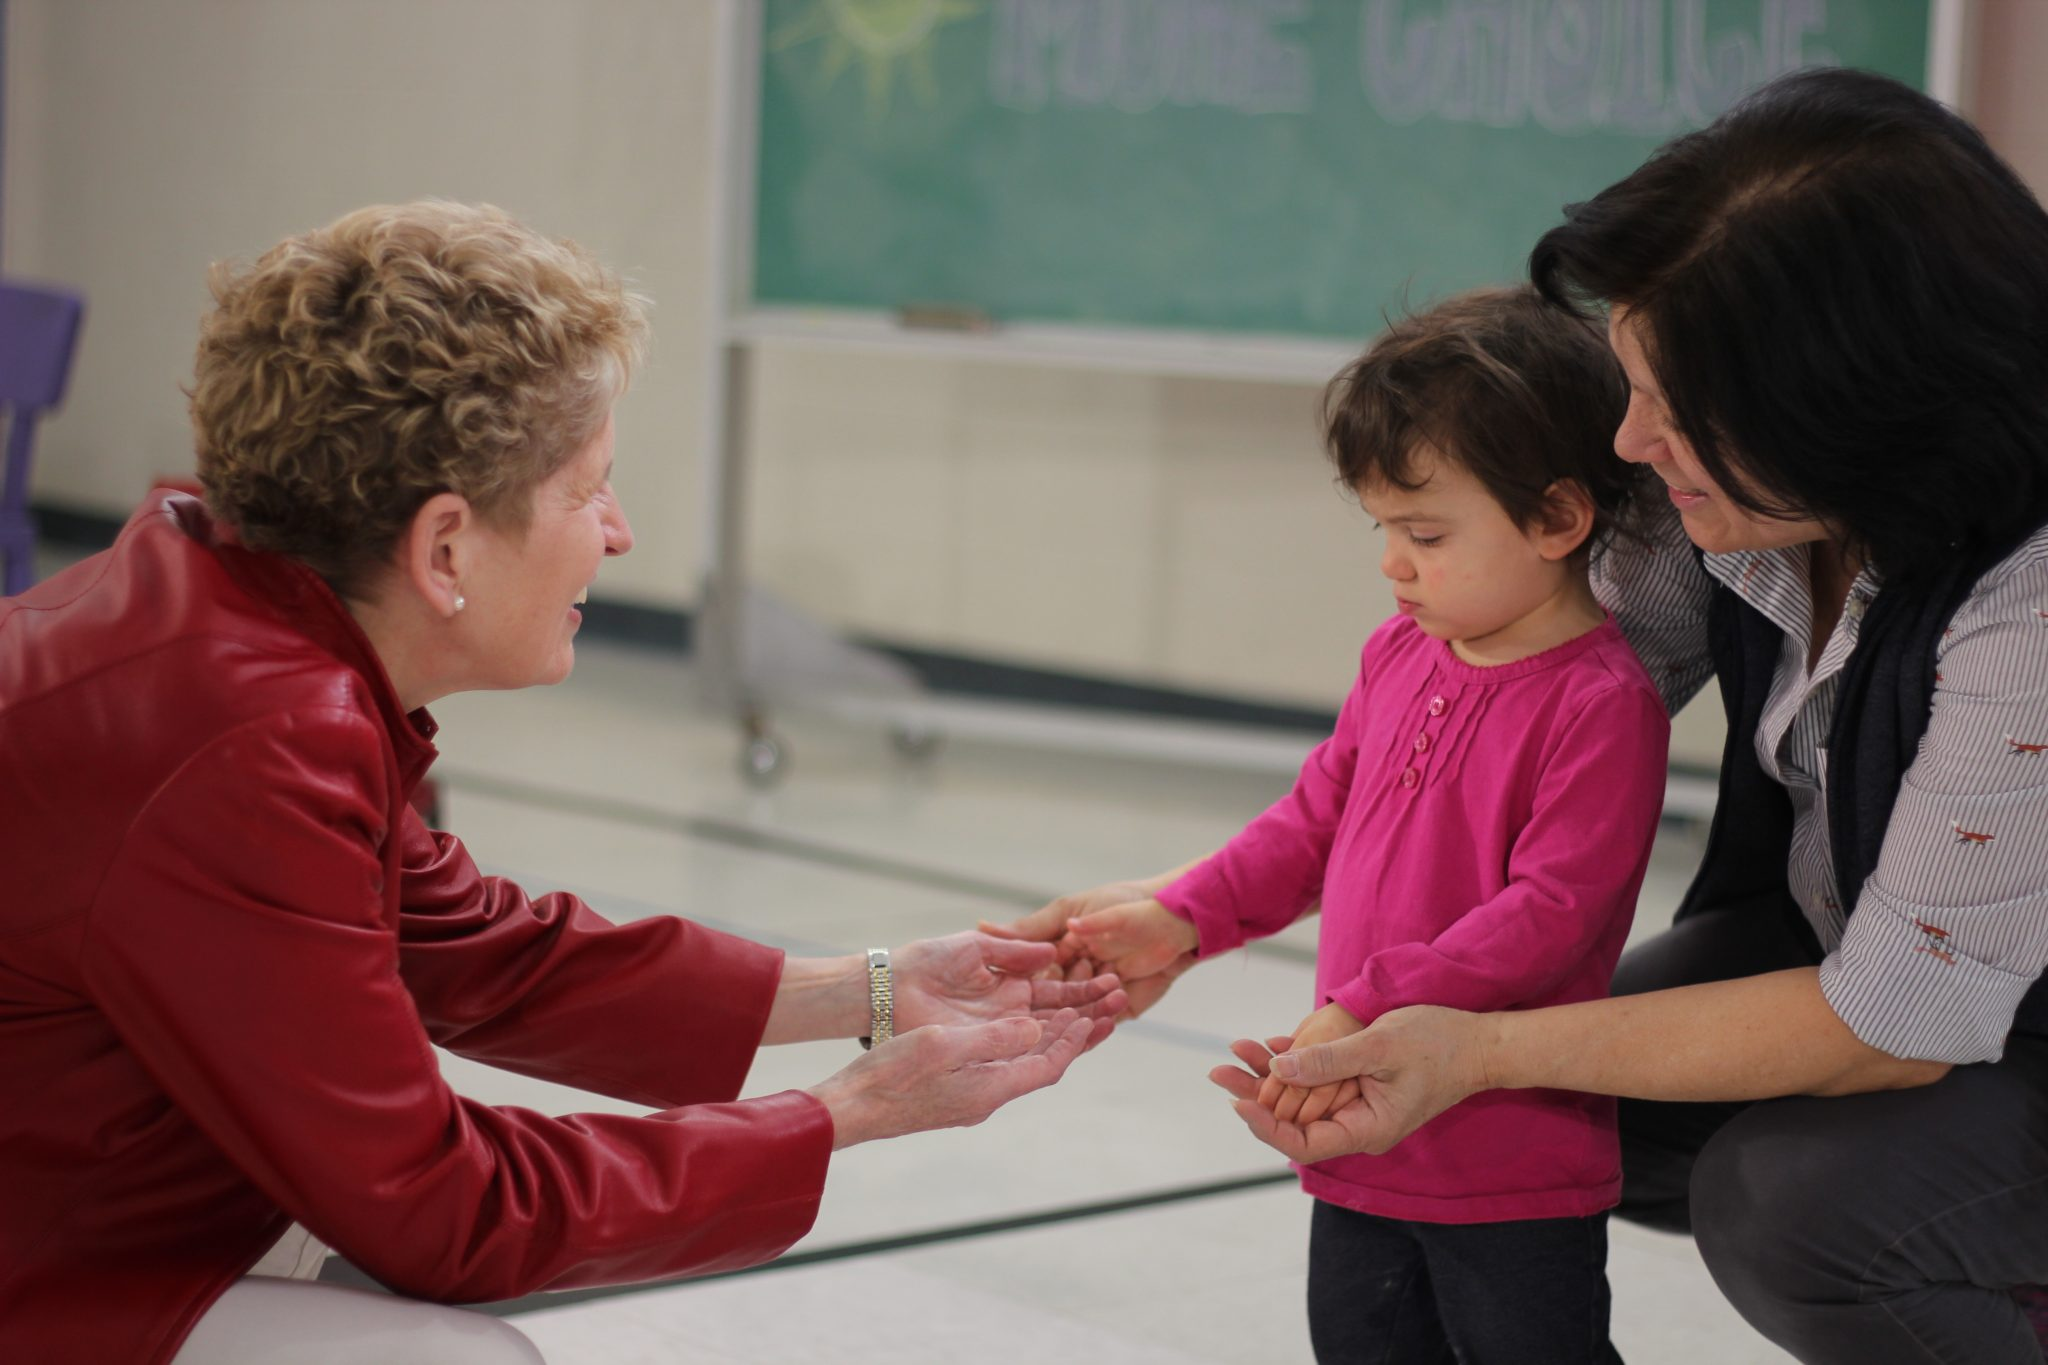 Milloy: The proposed federal child-care program is a good step forward, but far from perfect